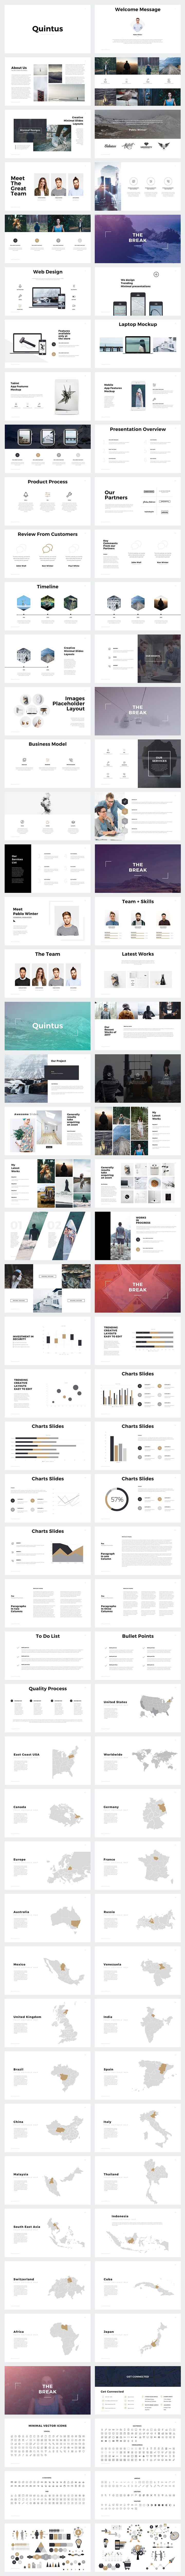 best creative presentation ideas presentation present your works professional and clean quintus minimal this powerpoint presentation template has got